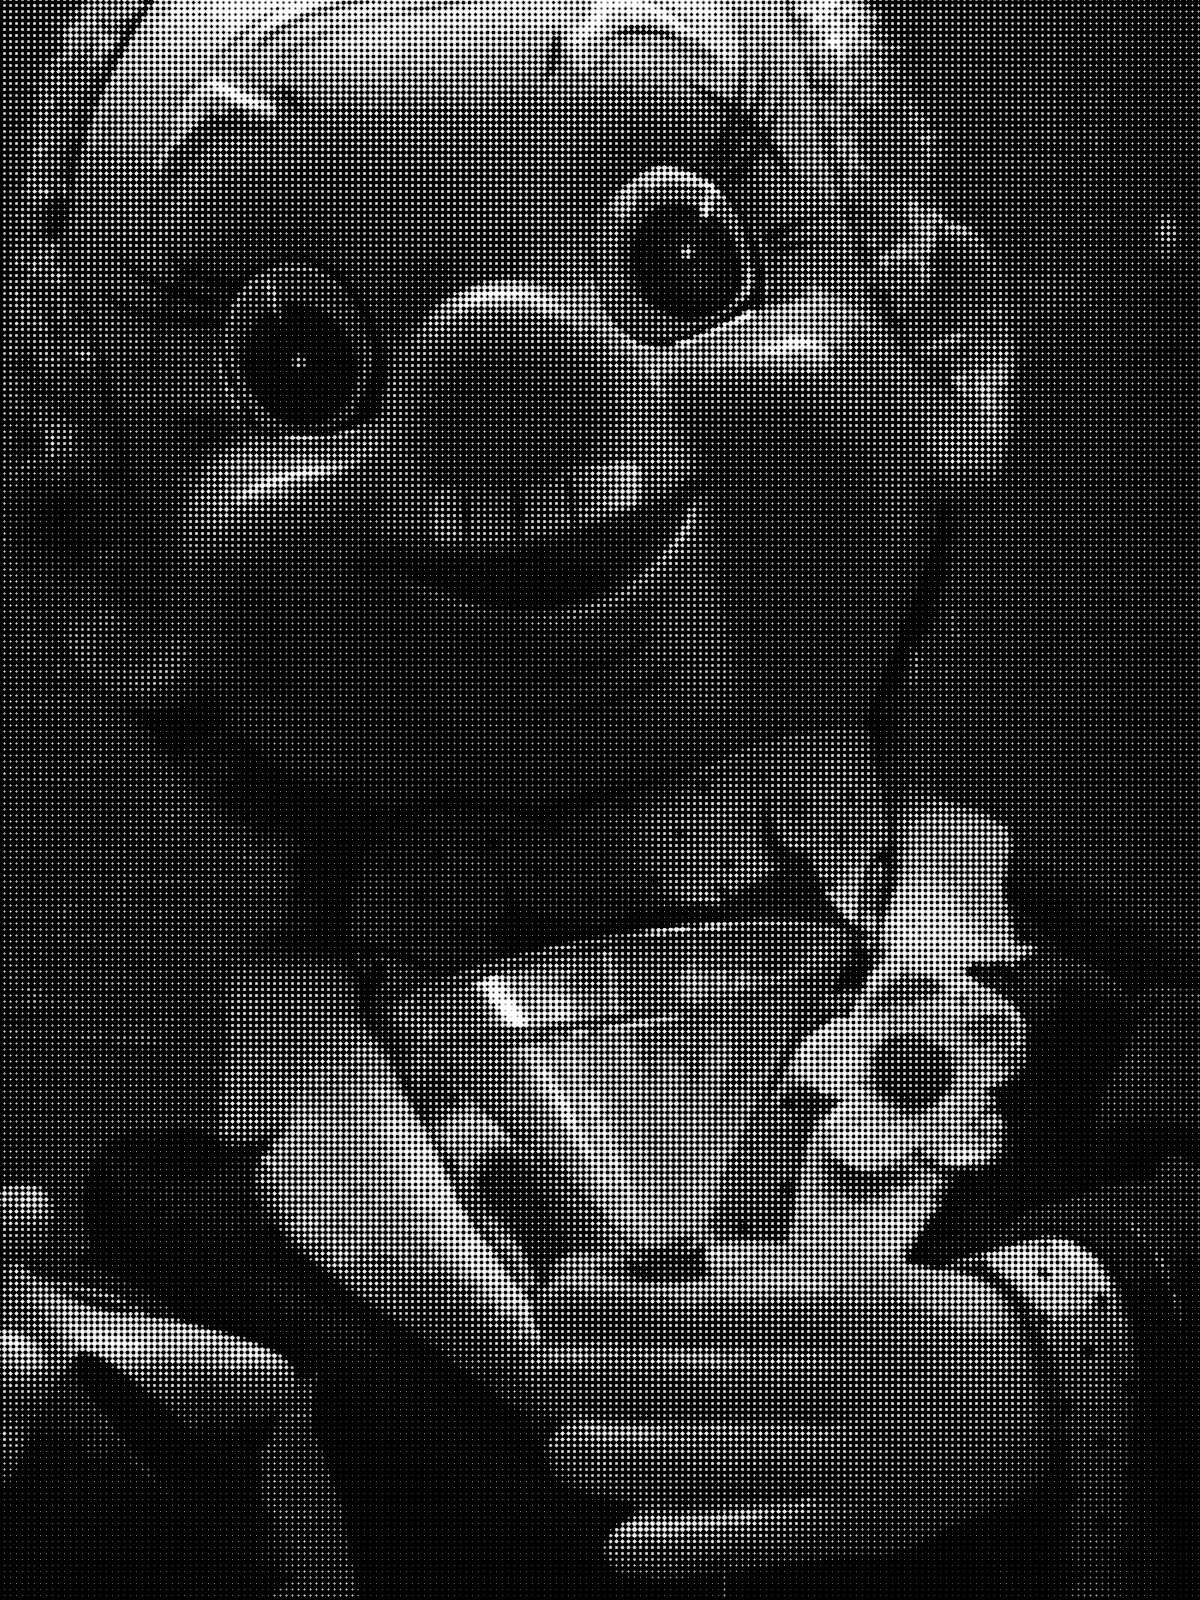 Uncanny Doll in the Fun House